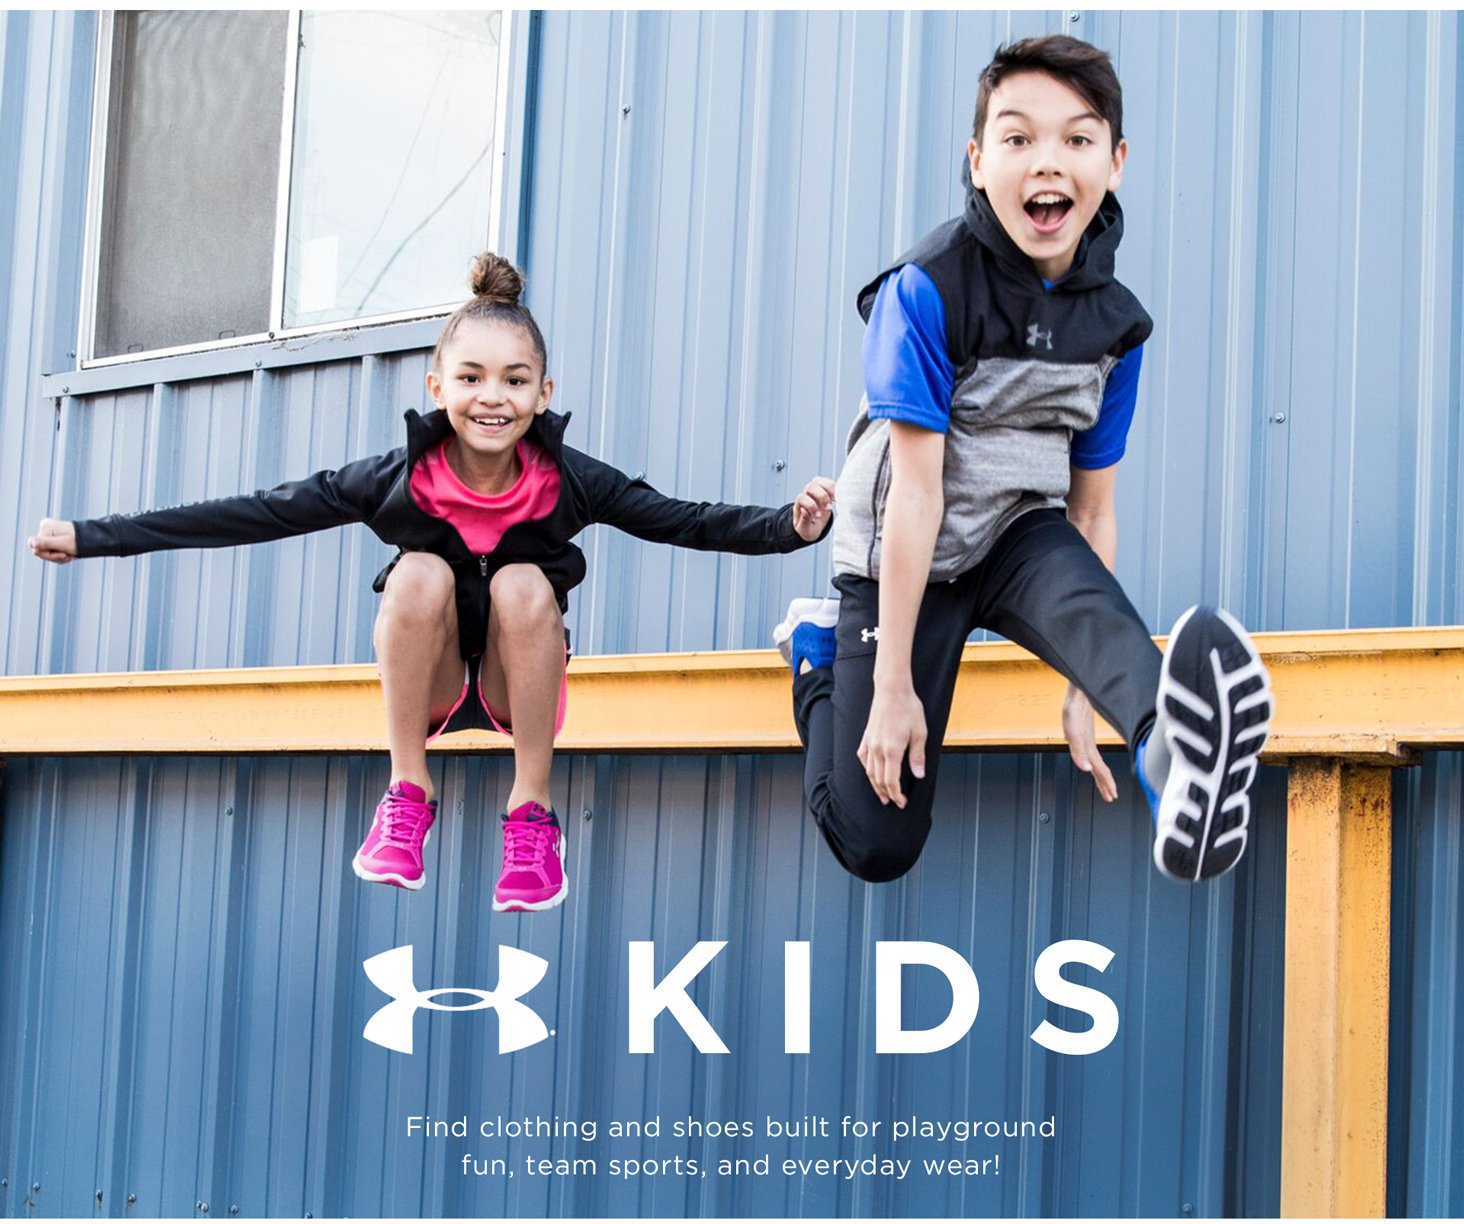 Kids: Find clothing and shoes built for playground fun, team sports, and everyday wear!